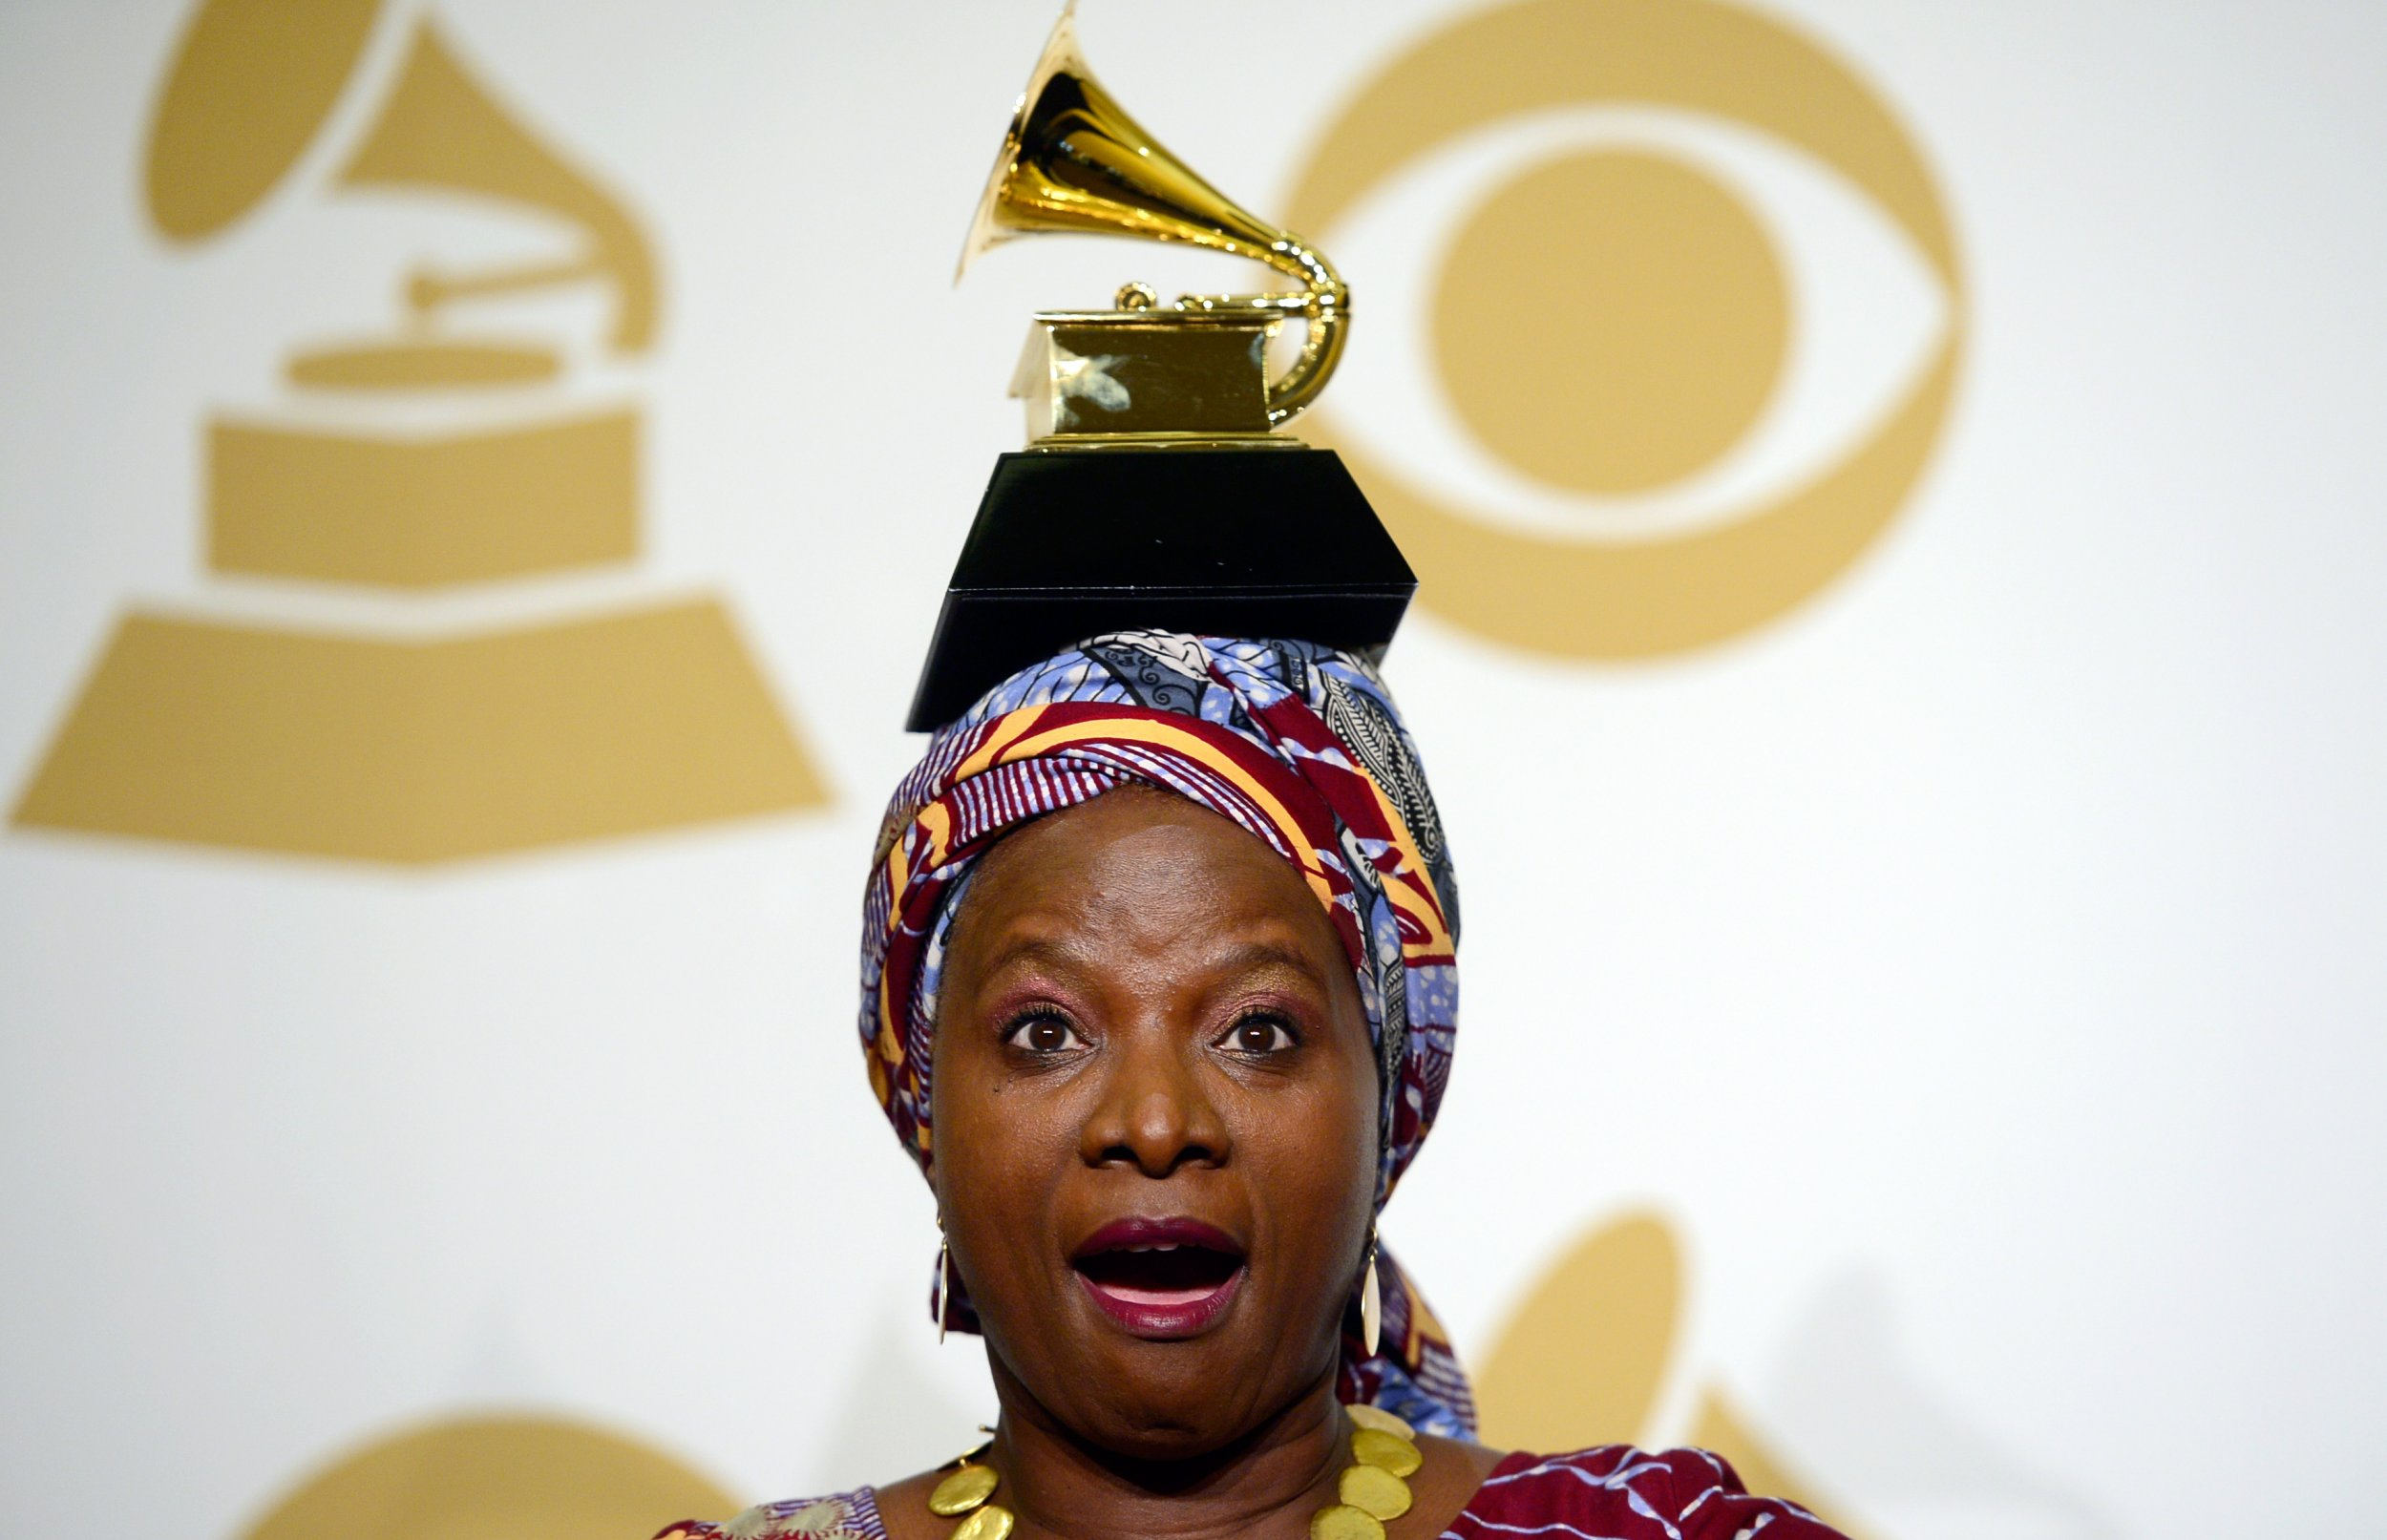 Angelique Kidjo with her Grammy award.